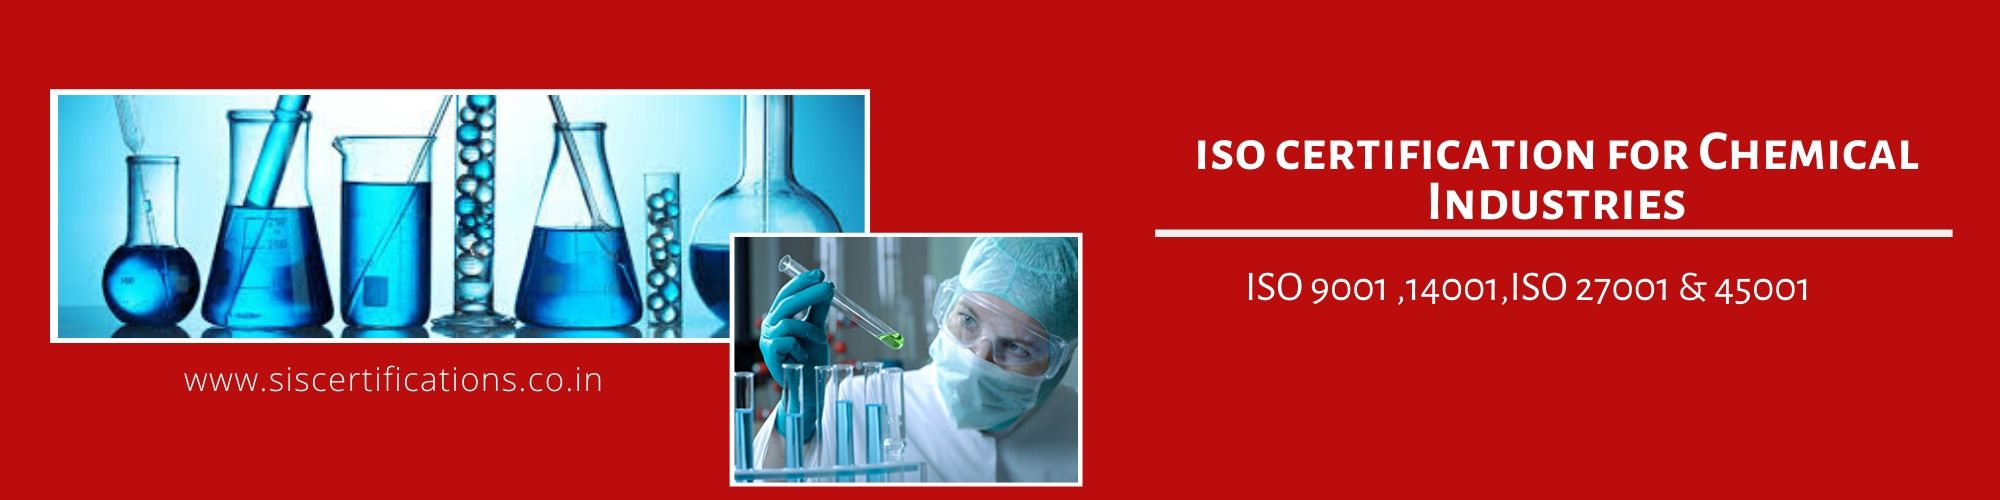 get ISO Certification for Chemical Industries